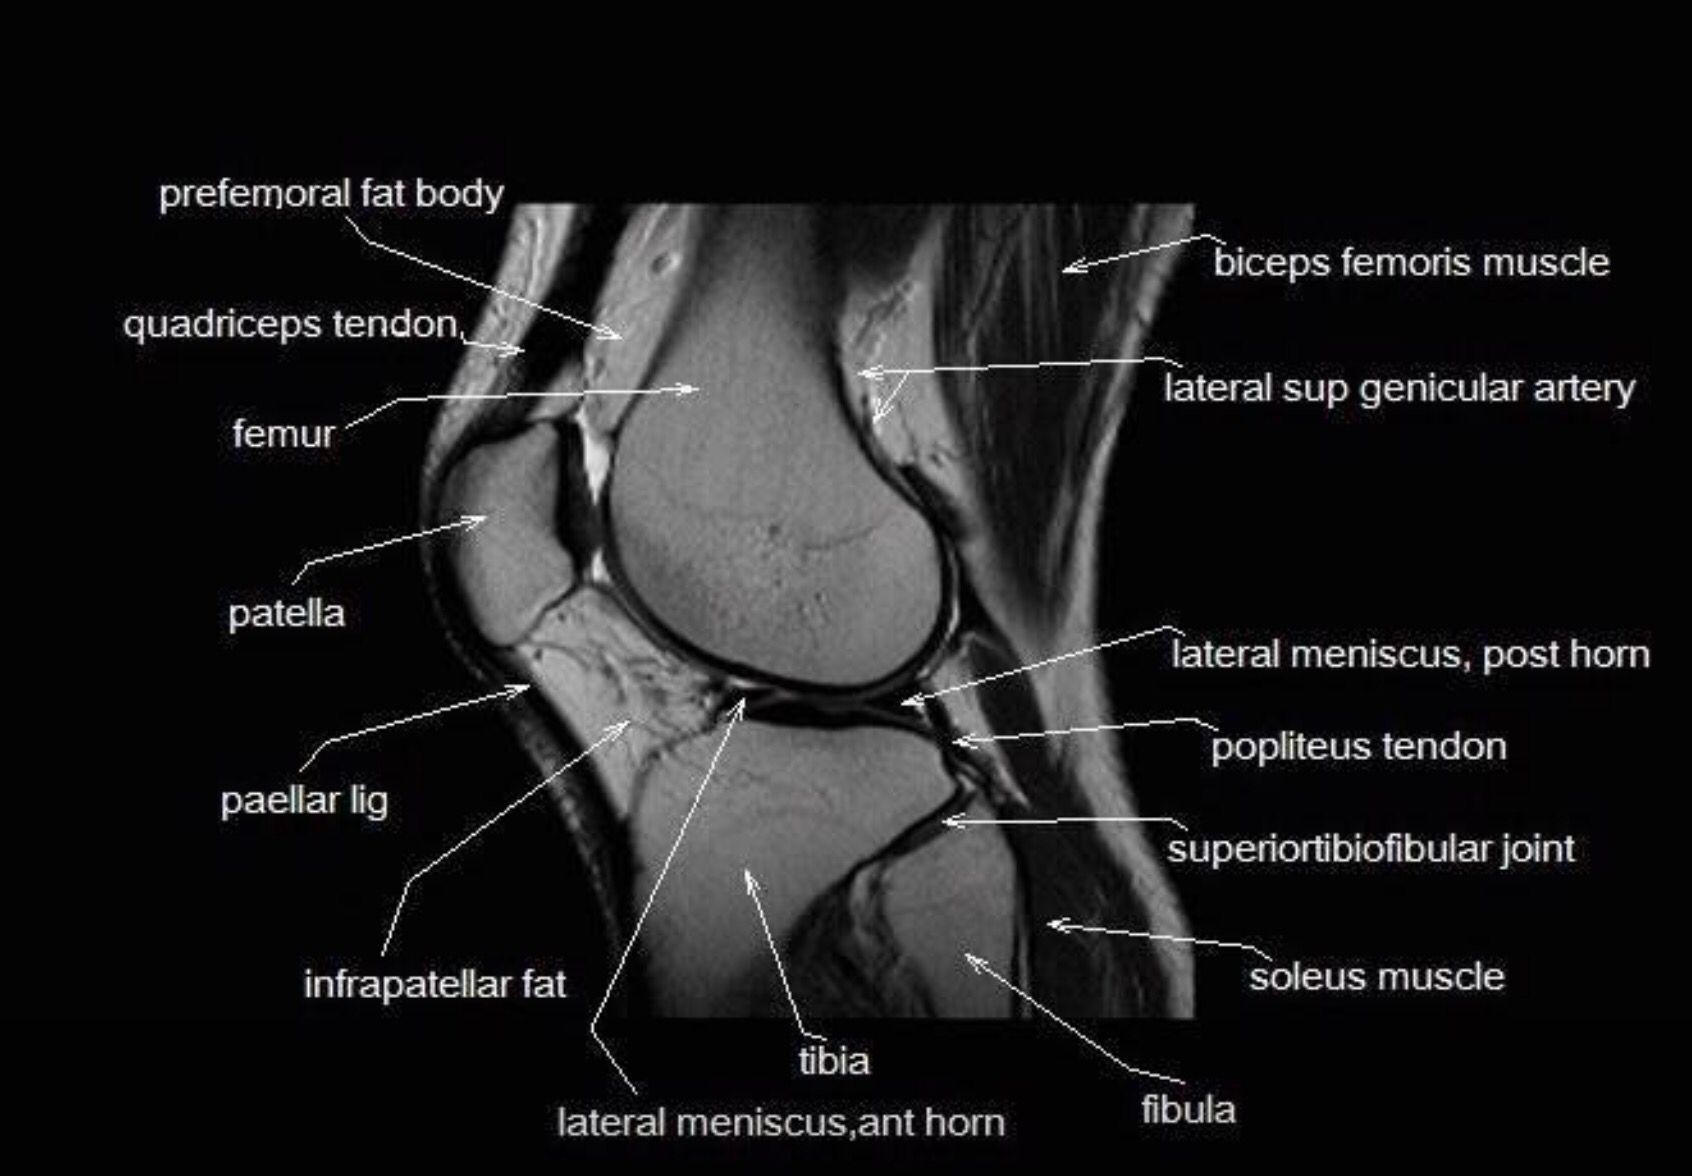 Mri Anatomy Of The Knee Unidadortopedia Pbx 6923370 Unidad